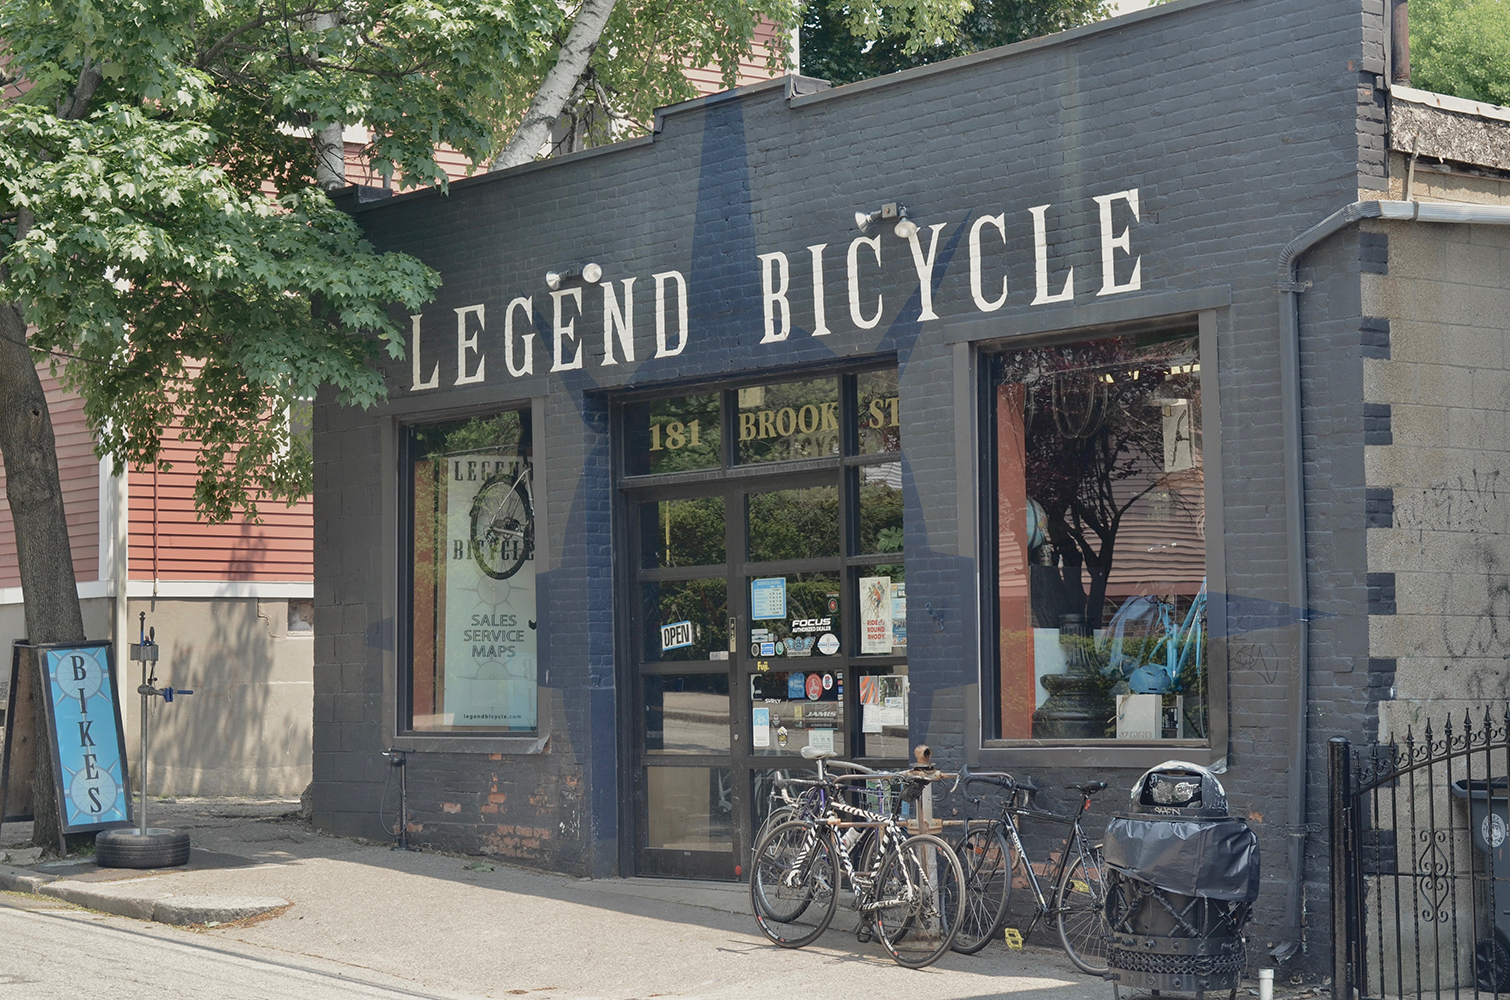 Legend Bicycle